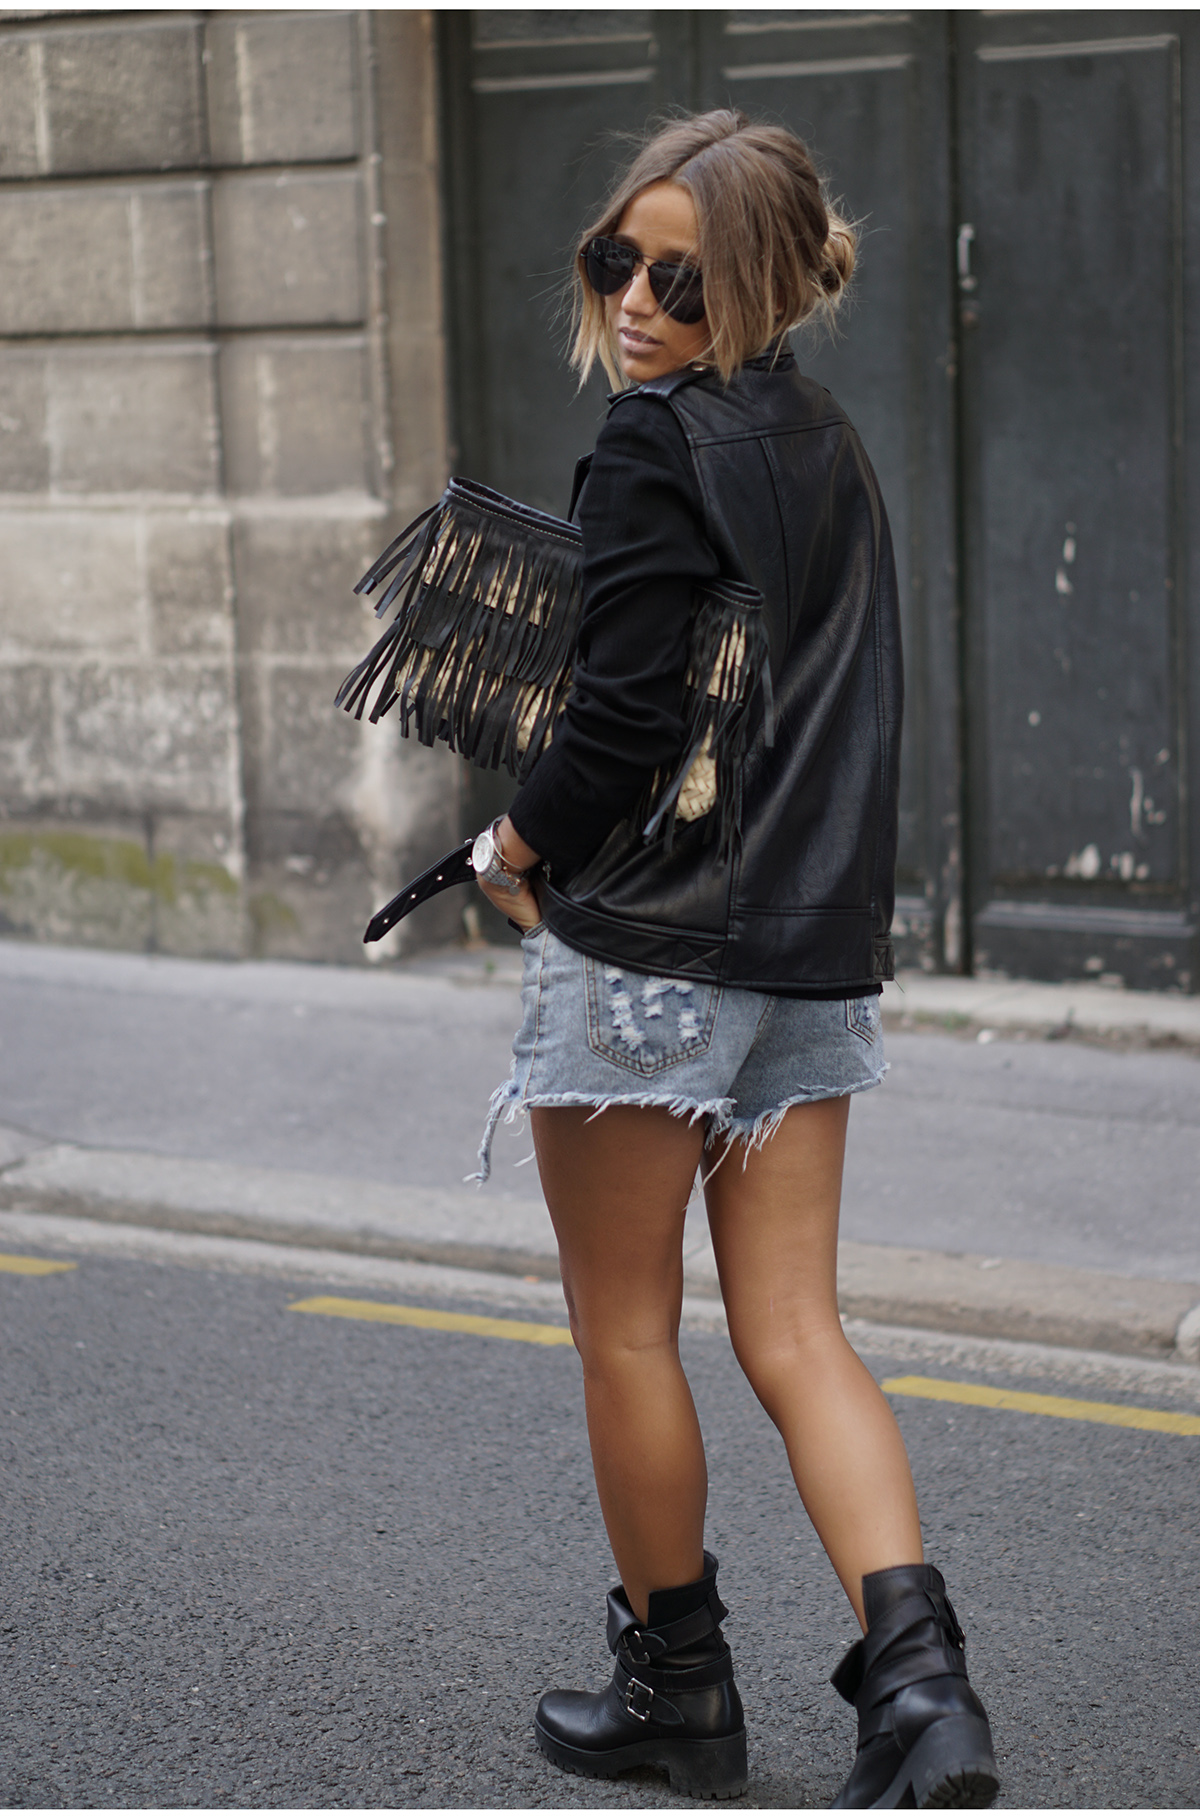 Rocker Outfits The Ultimate In Girl Style And How